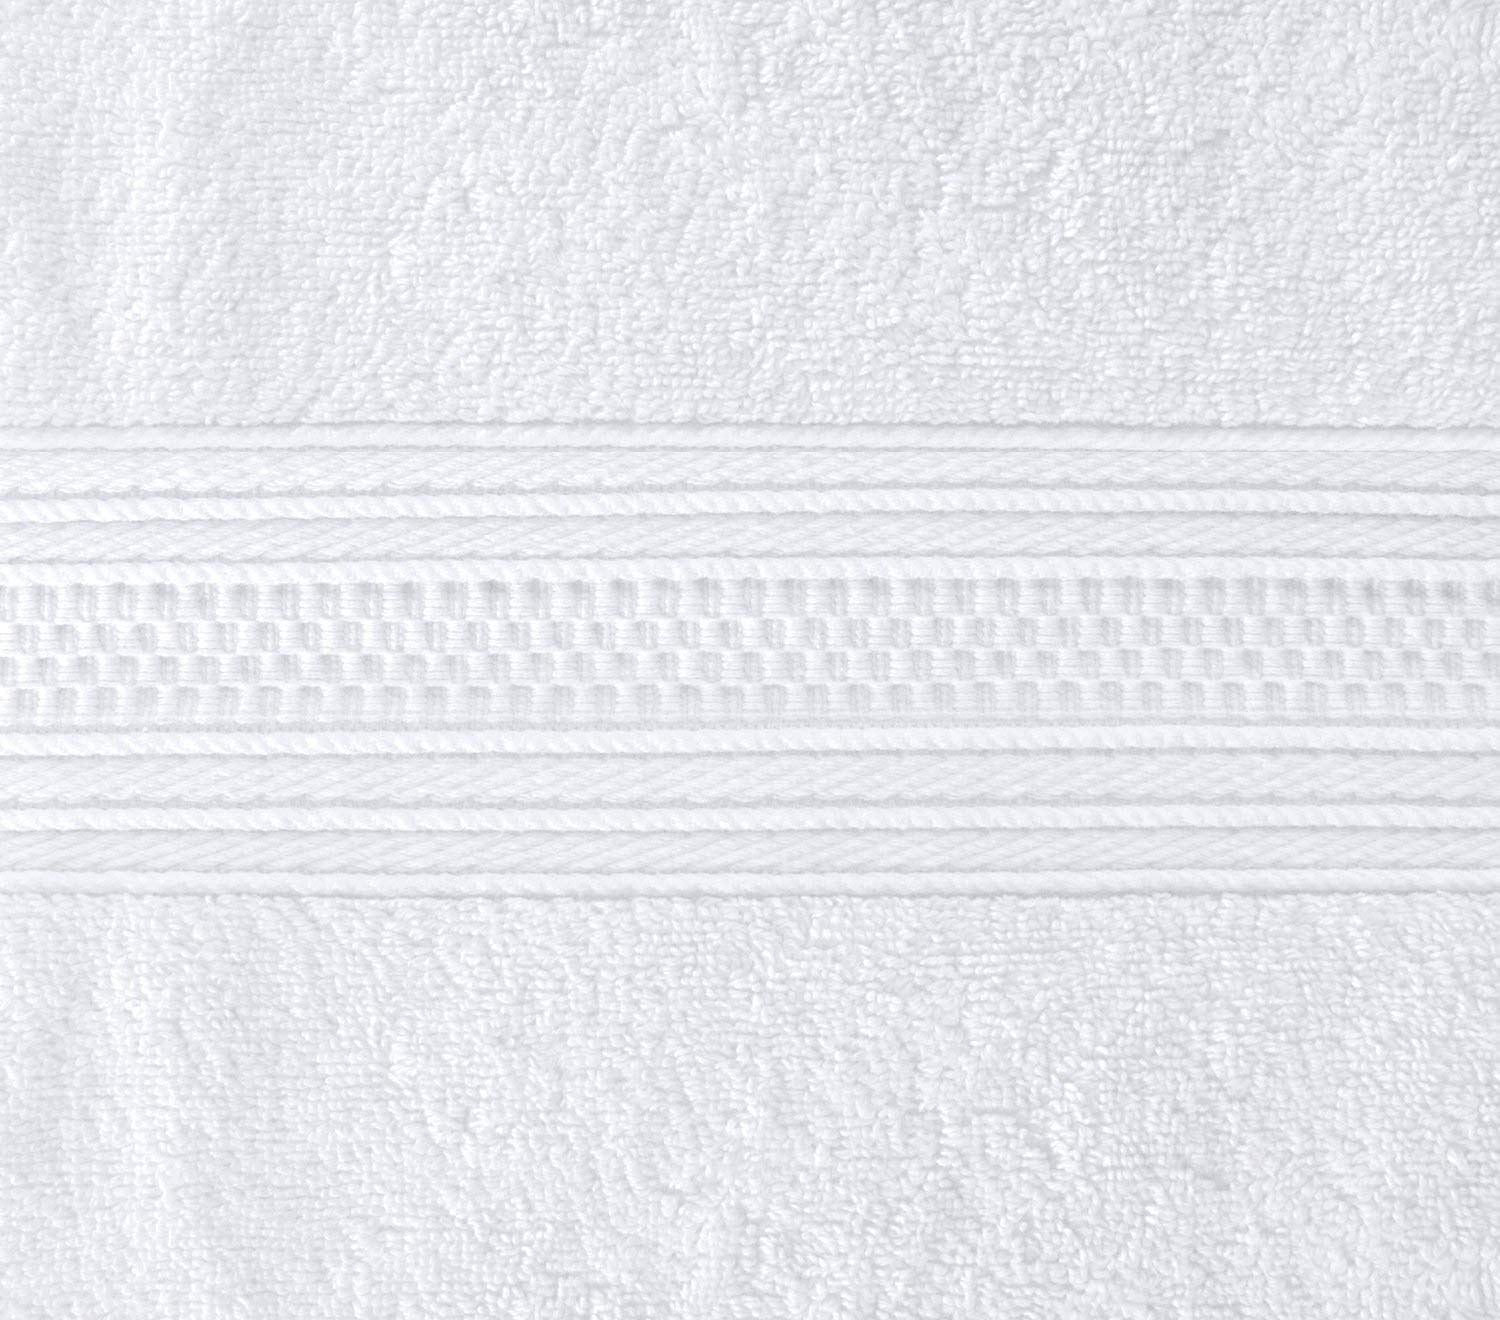 Utopia Towels Pack of 24-700 GSM Premium Cotton Bath Towel (White, 27 x 54 Inches) Luxury Bath Sheet Perfect for Home, Bathrooms, Pool and Gym Ring-Spun Cotton (White) by Utopia Towels (Image #4)